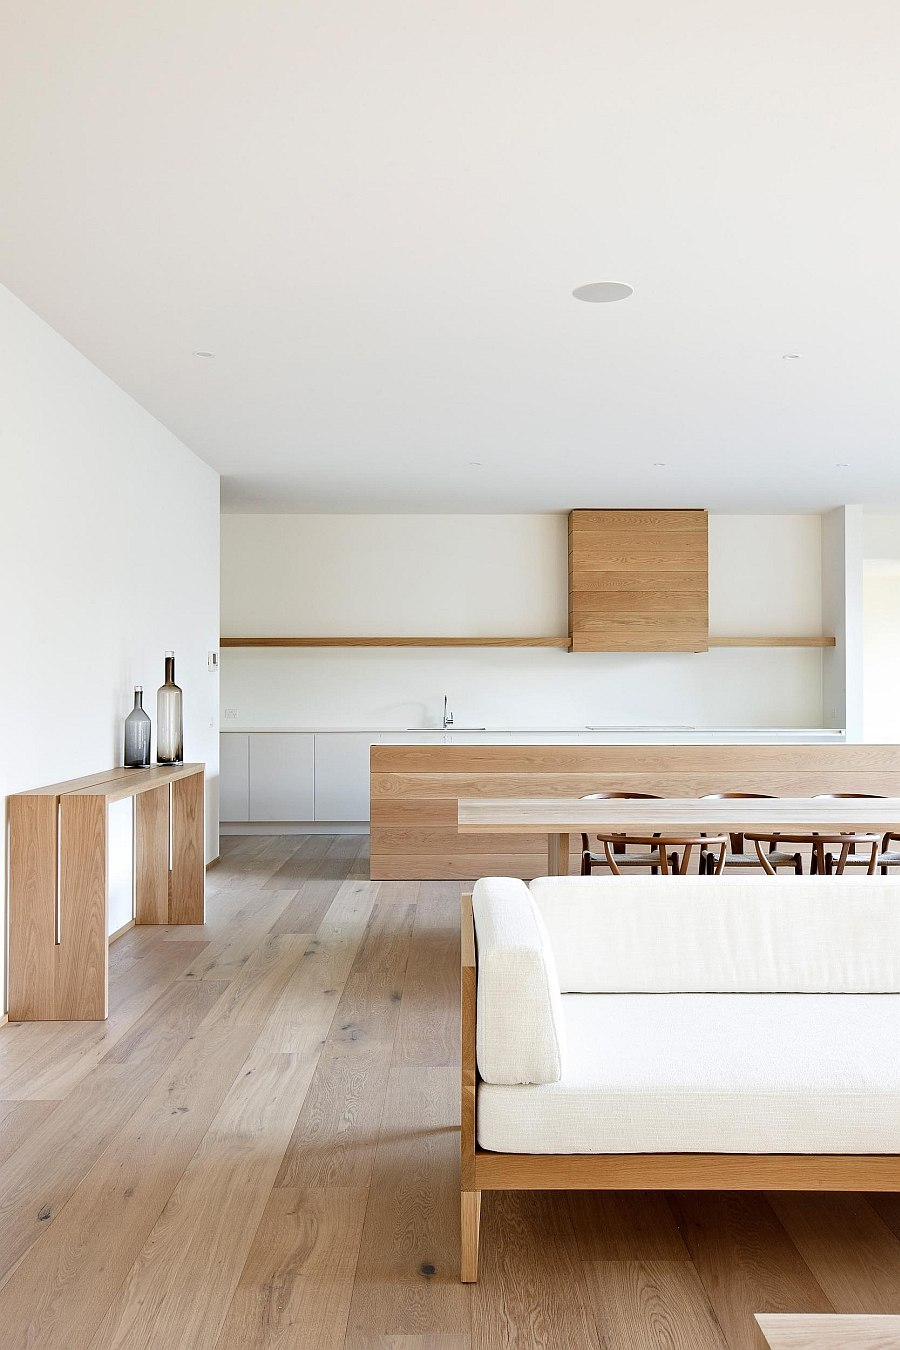 Warm wooden surfaces brighten the minimal interior